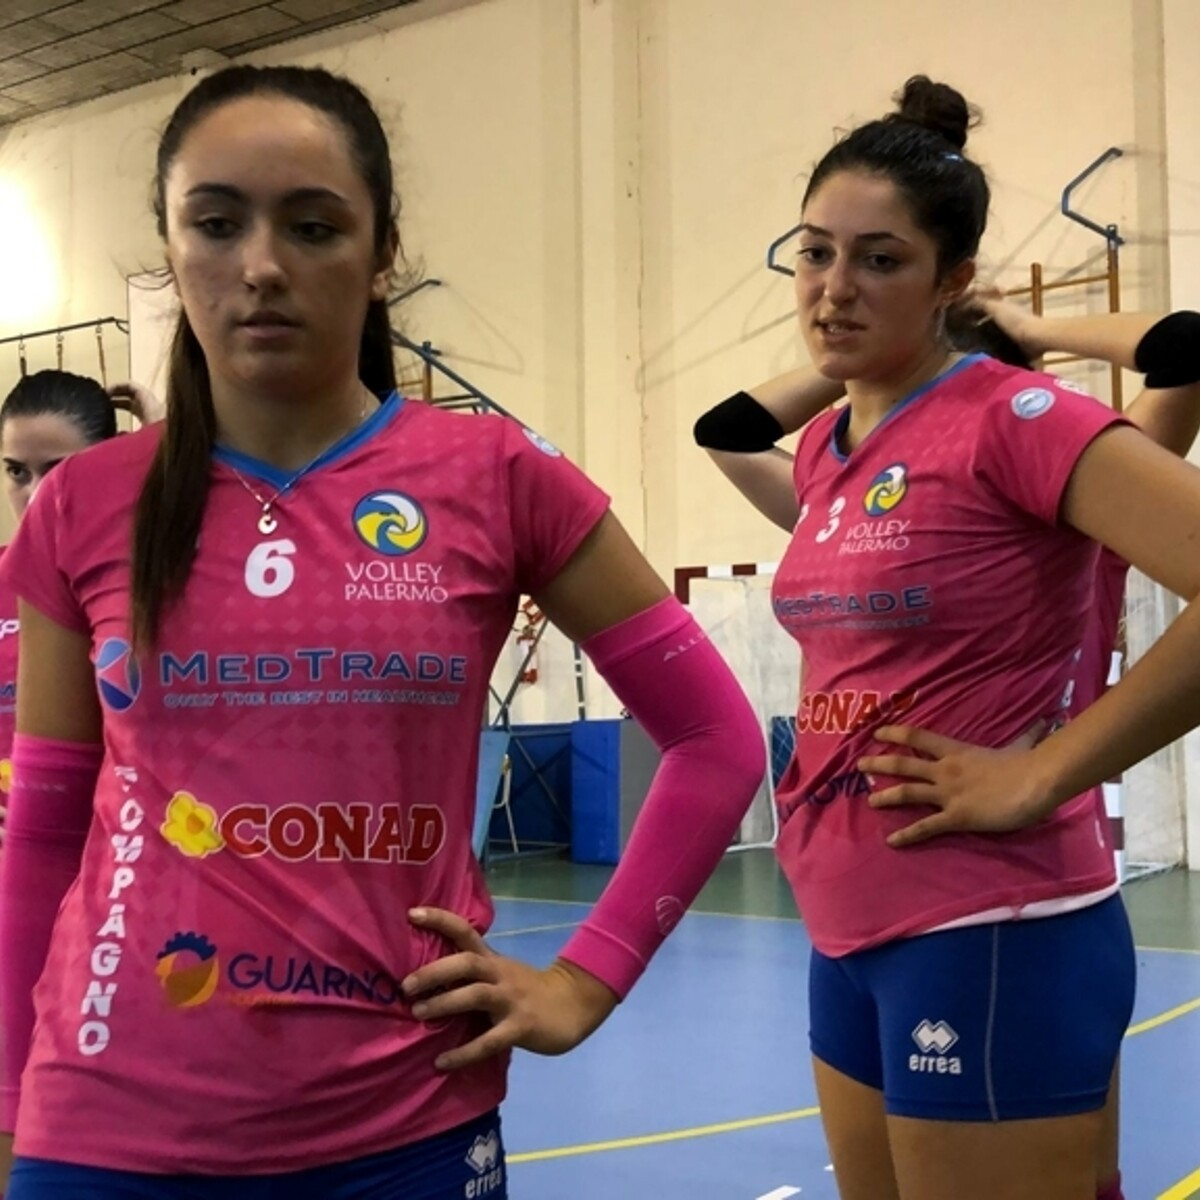 B2 women's series, Medtrade volley Palermo loses on the field of the Etna cableway thumbnail